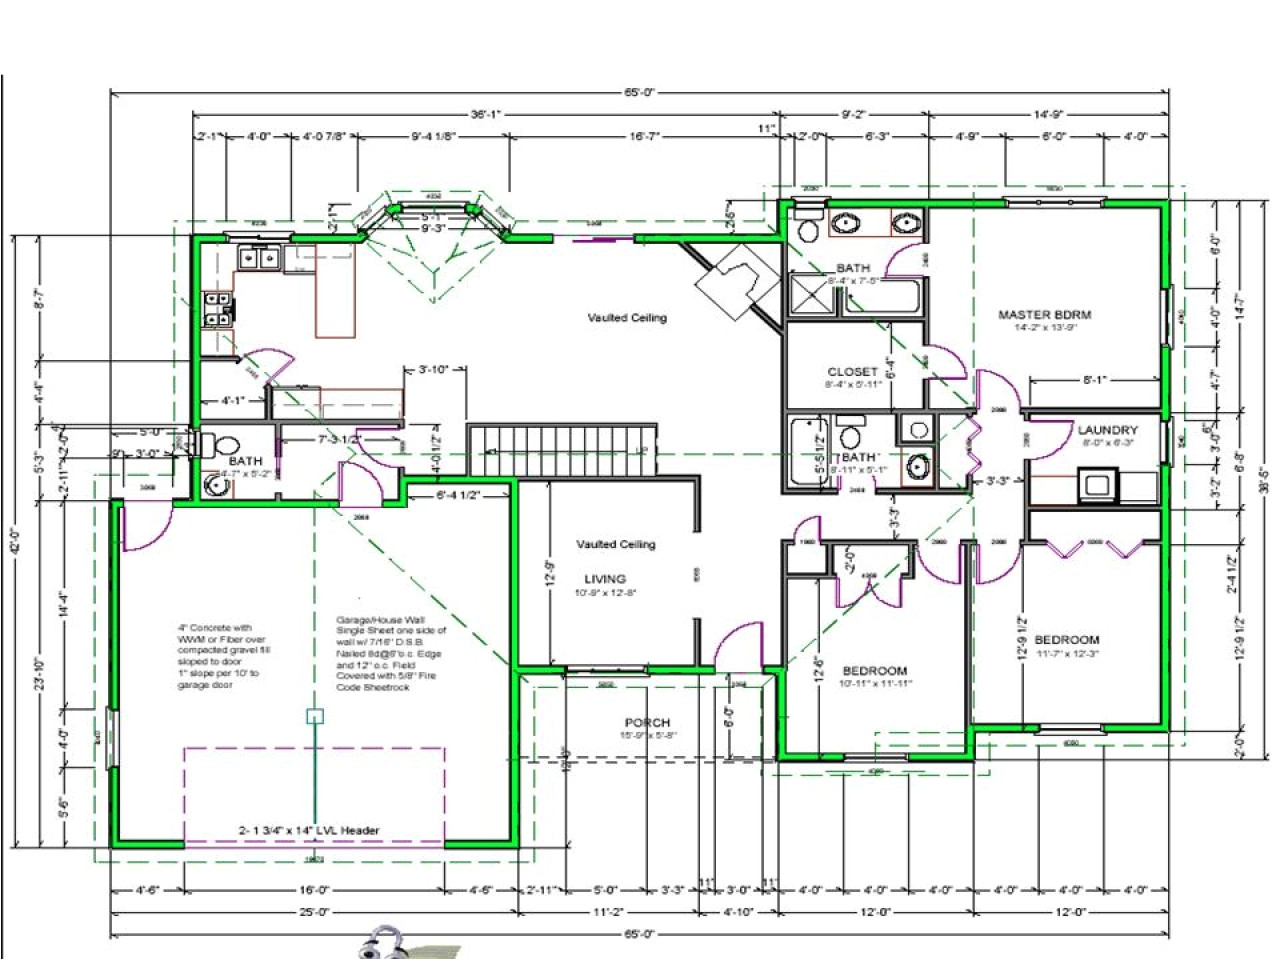 48e43117086a4357 draw house plans free draw simple floor plans free